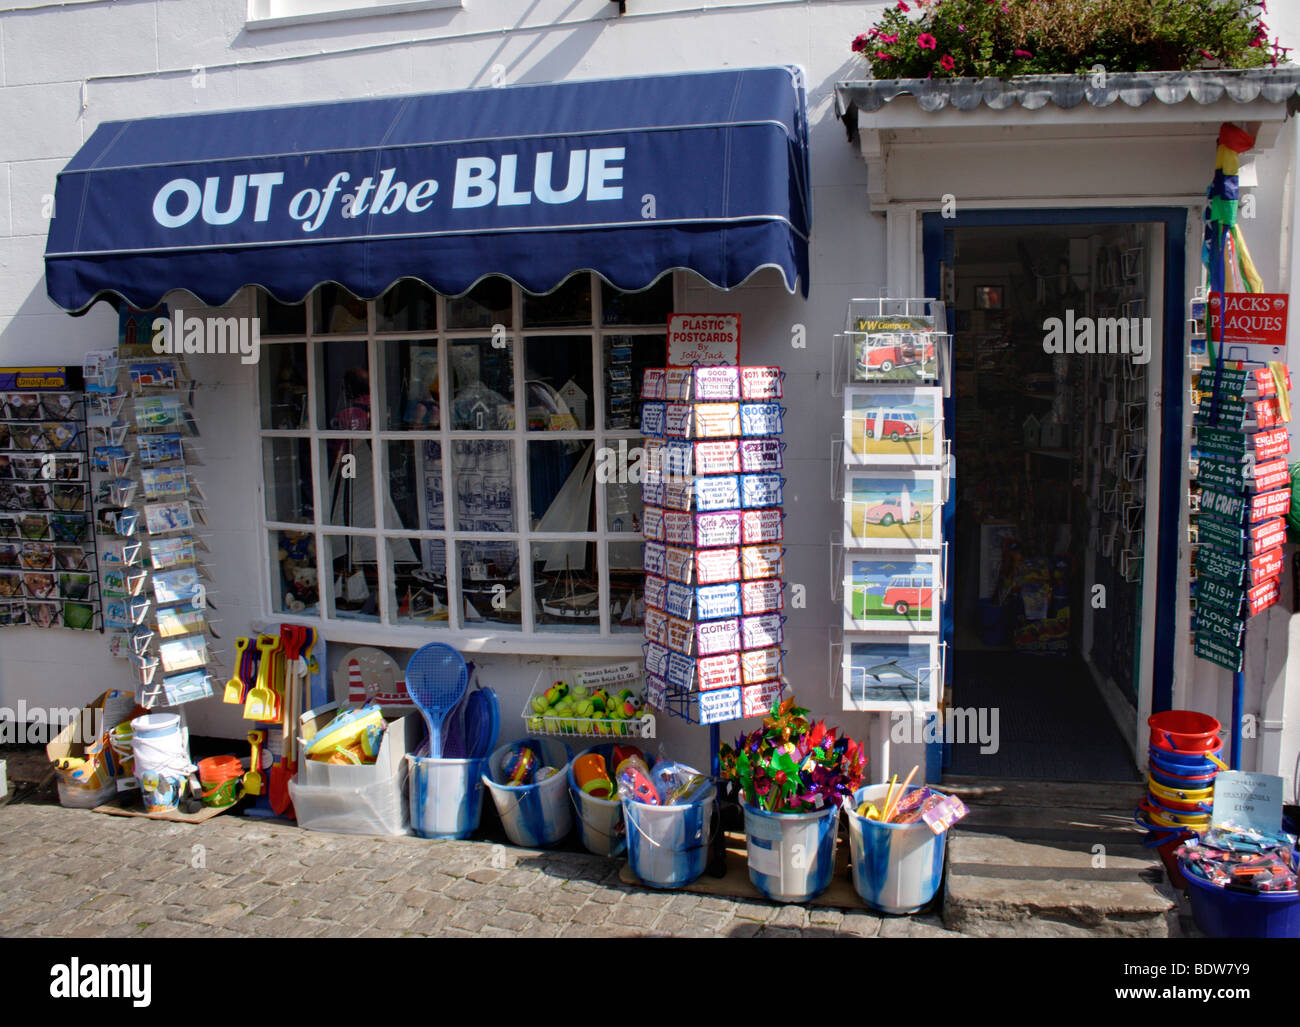 Out of the Blue Shop Quay Street Lymington Hampshire - Stock Image